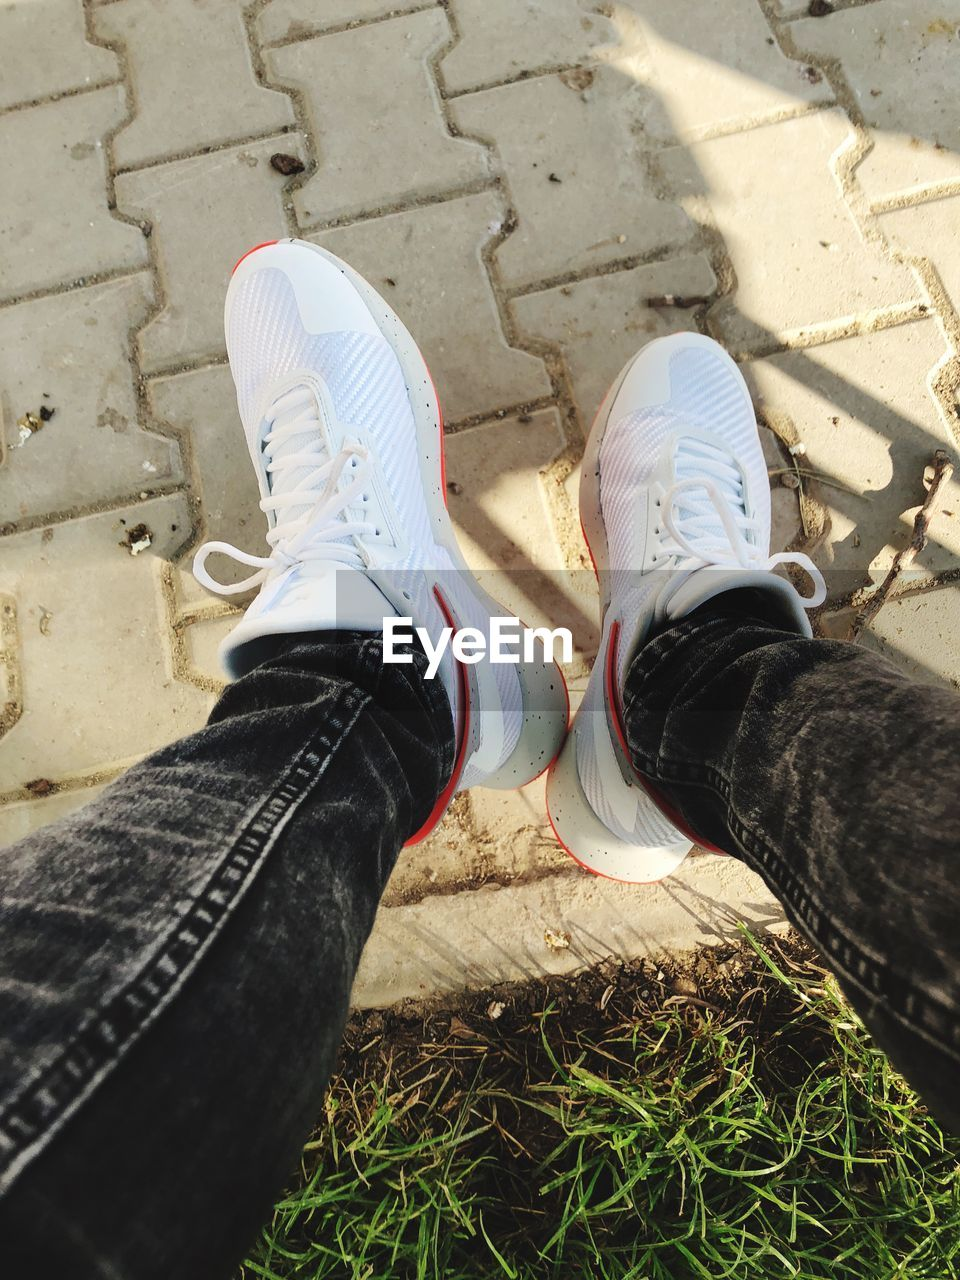 low section, shoe, human leg, real people, personal perspective, lifestyles, human body part, body part, high angle view, day, leisure activity, jeans, nature, land, unrecognizable person, men, outdoors, human foot